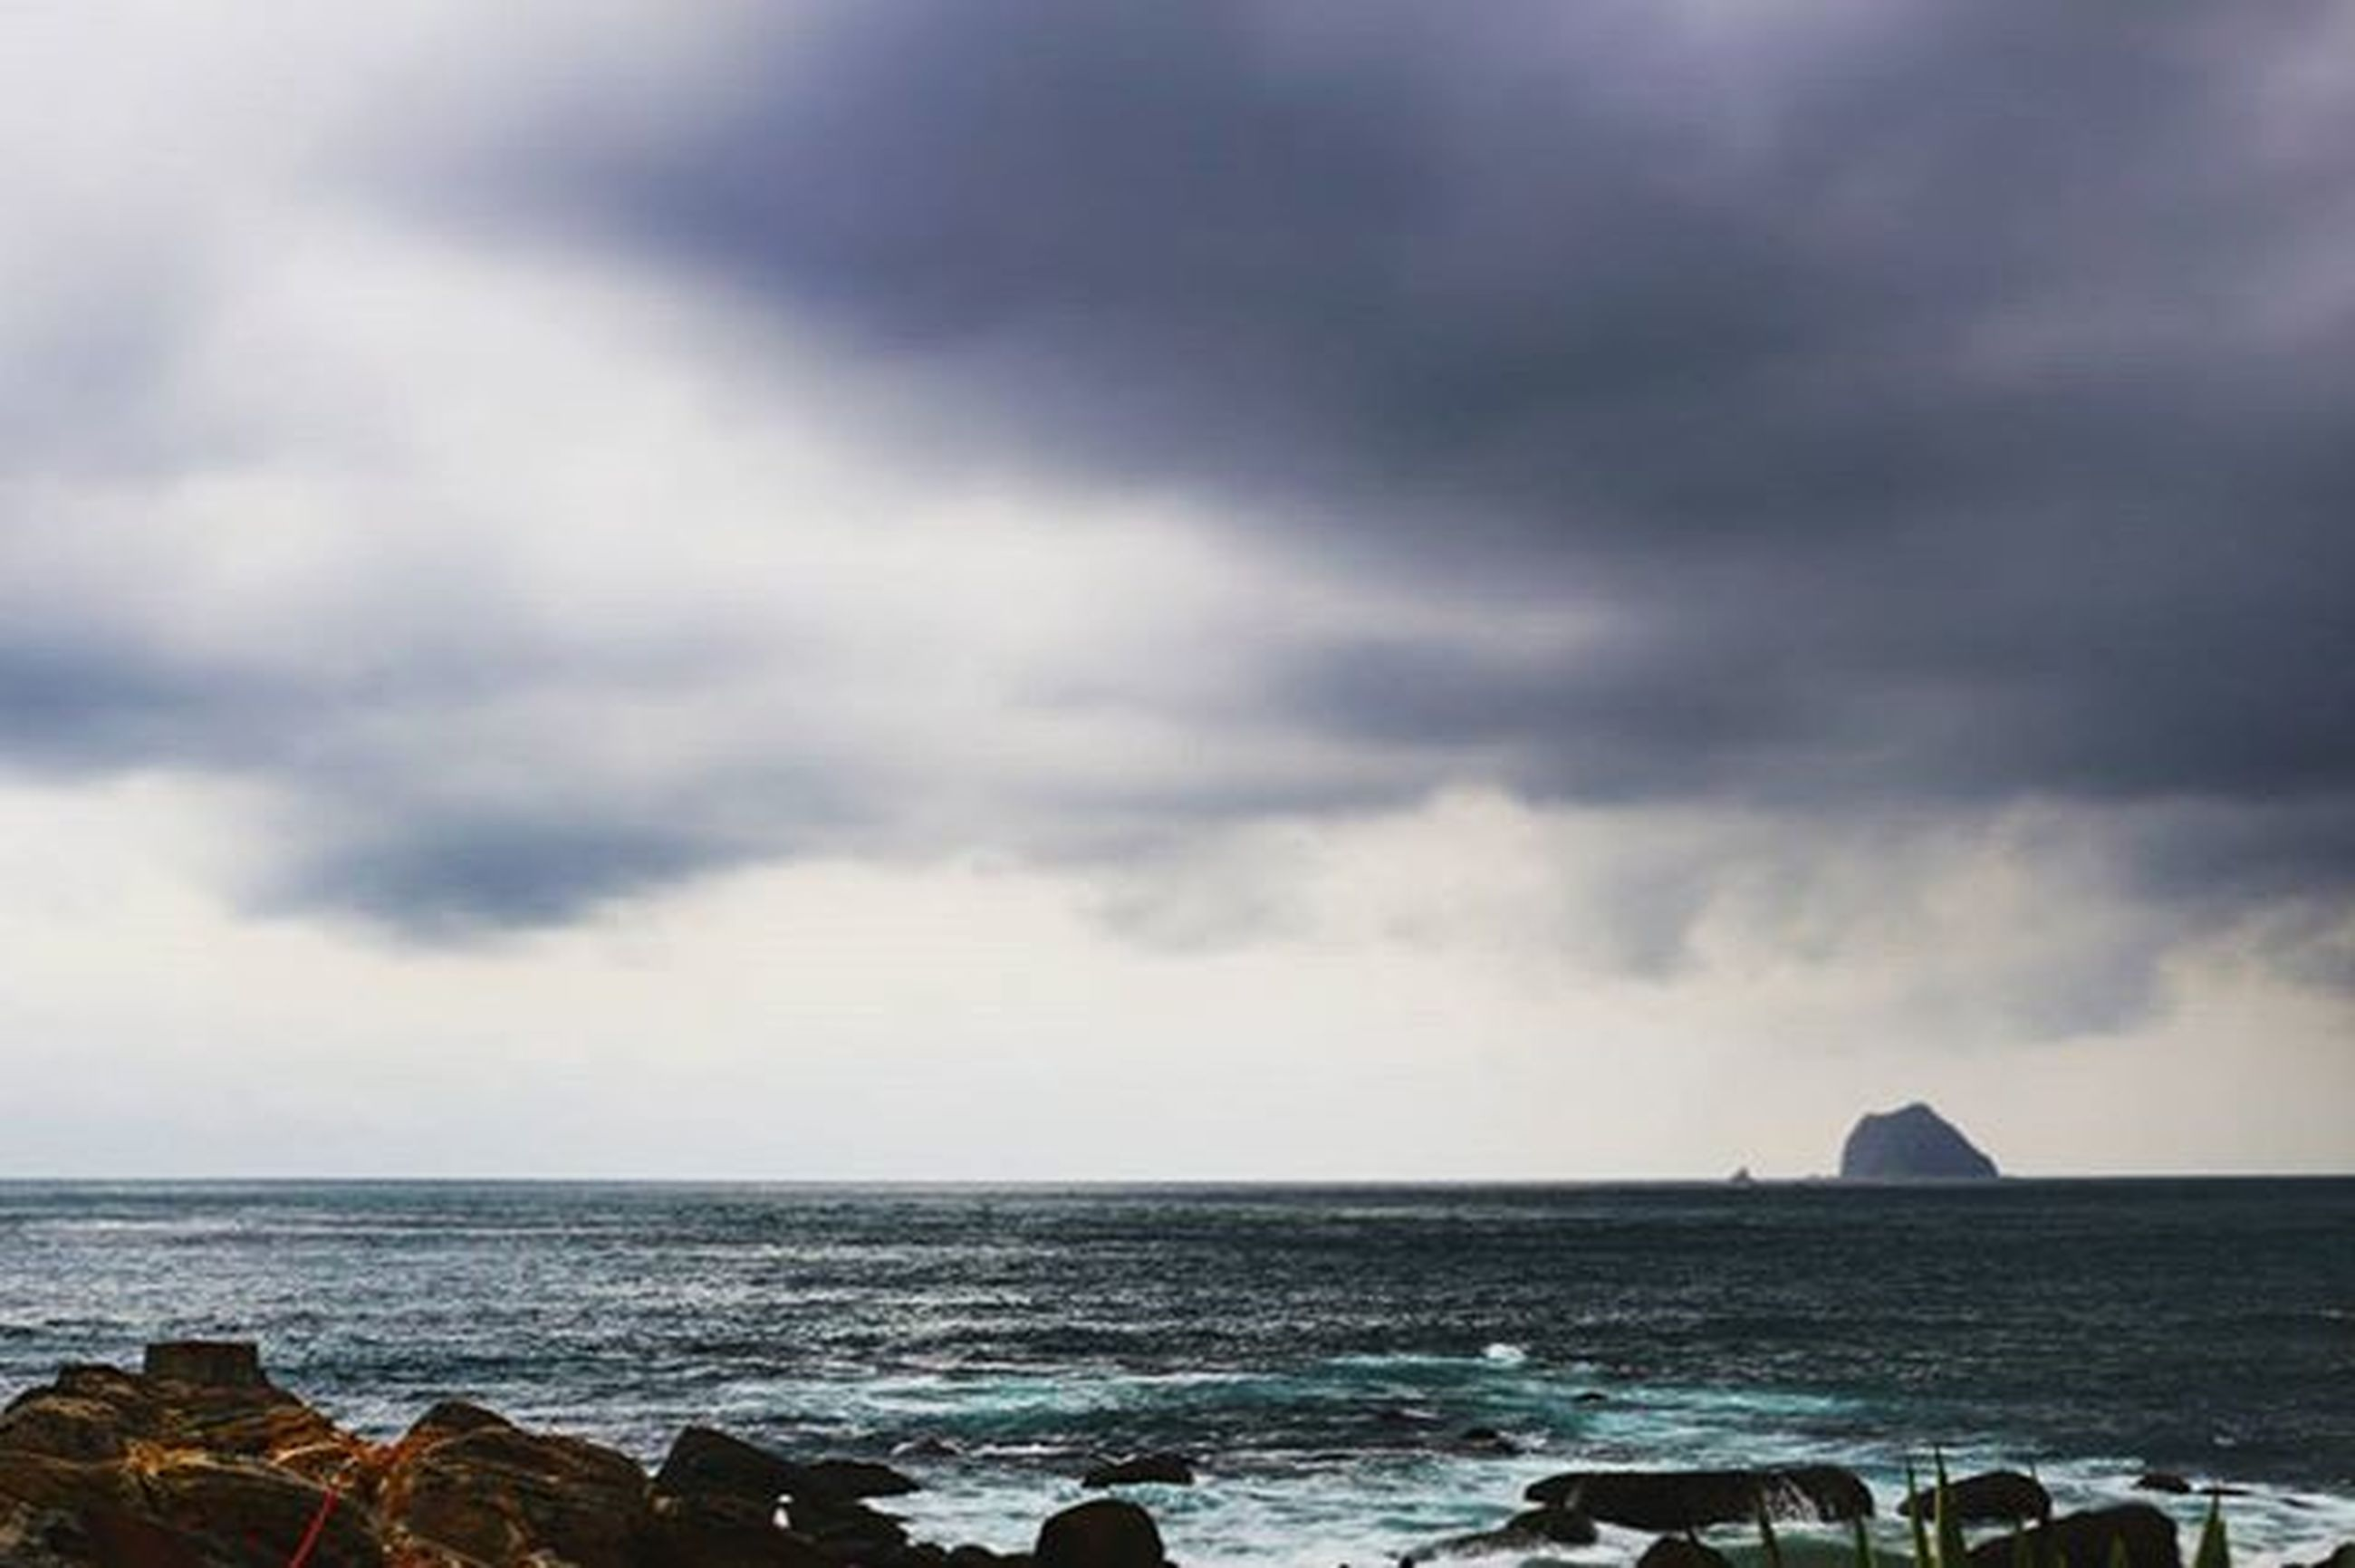 sea, horizon over water, sky, water, cloud - sky, cloudy, scenics, beauty in nature, tranquil scene, tranquility, nature, weather, rock - object, overcast, cloud, beach, shore, idyllic, storm cloud, outdoors